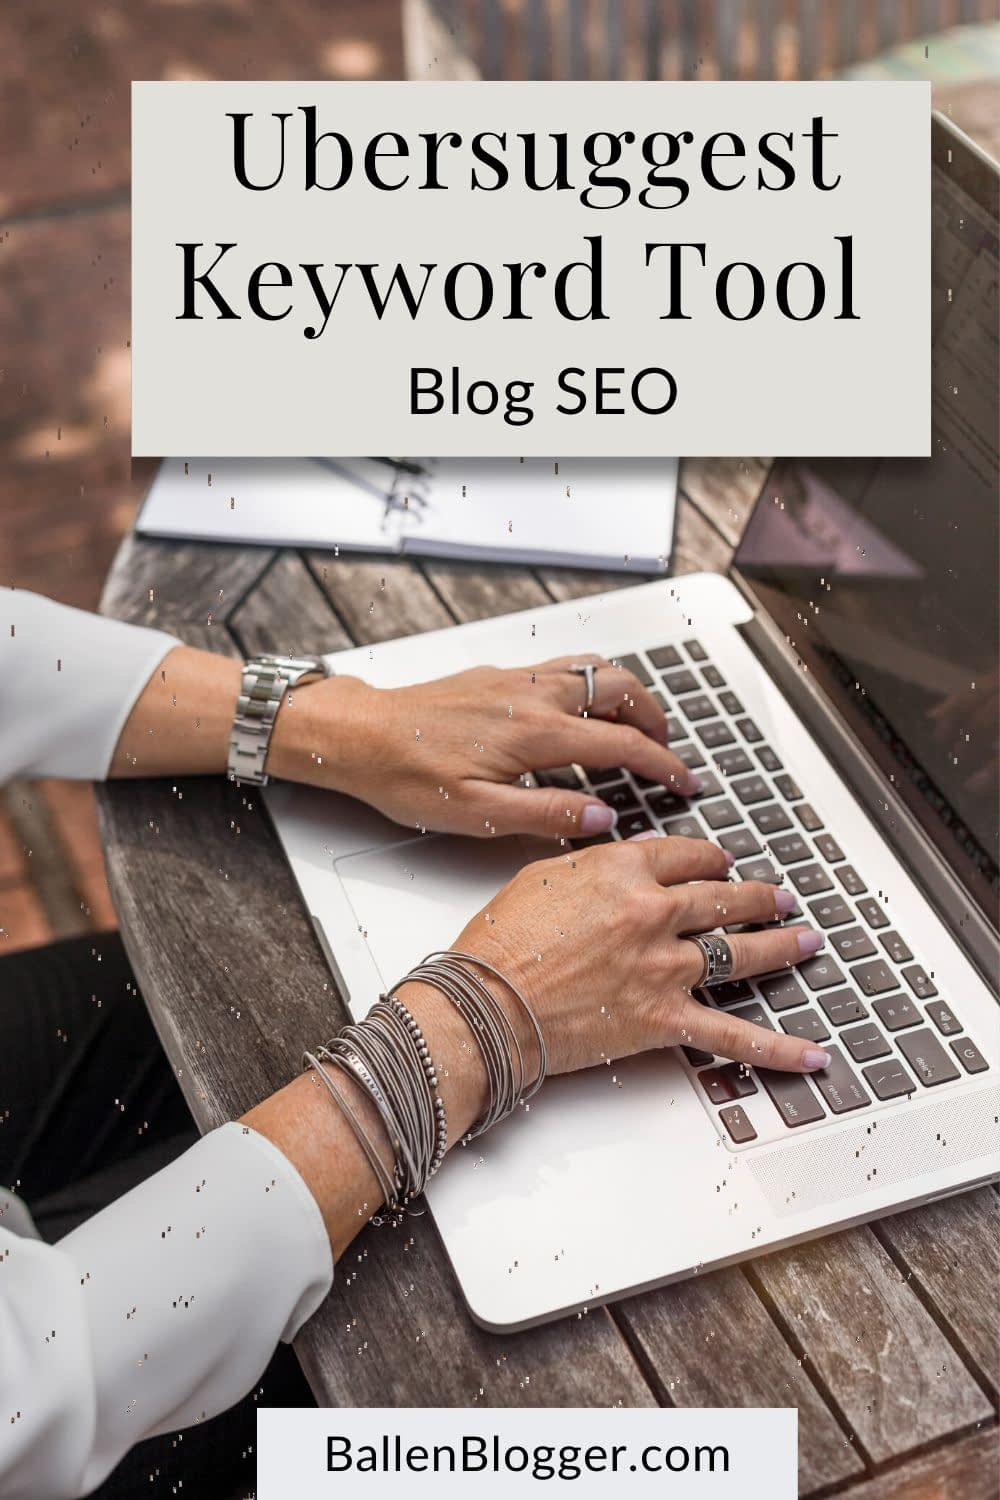 Ubersuggest is one of the top free keyword research tools on the market. This tool was already high on the popularity list, but it changed ownership in 2018 and has gotten even better.